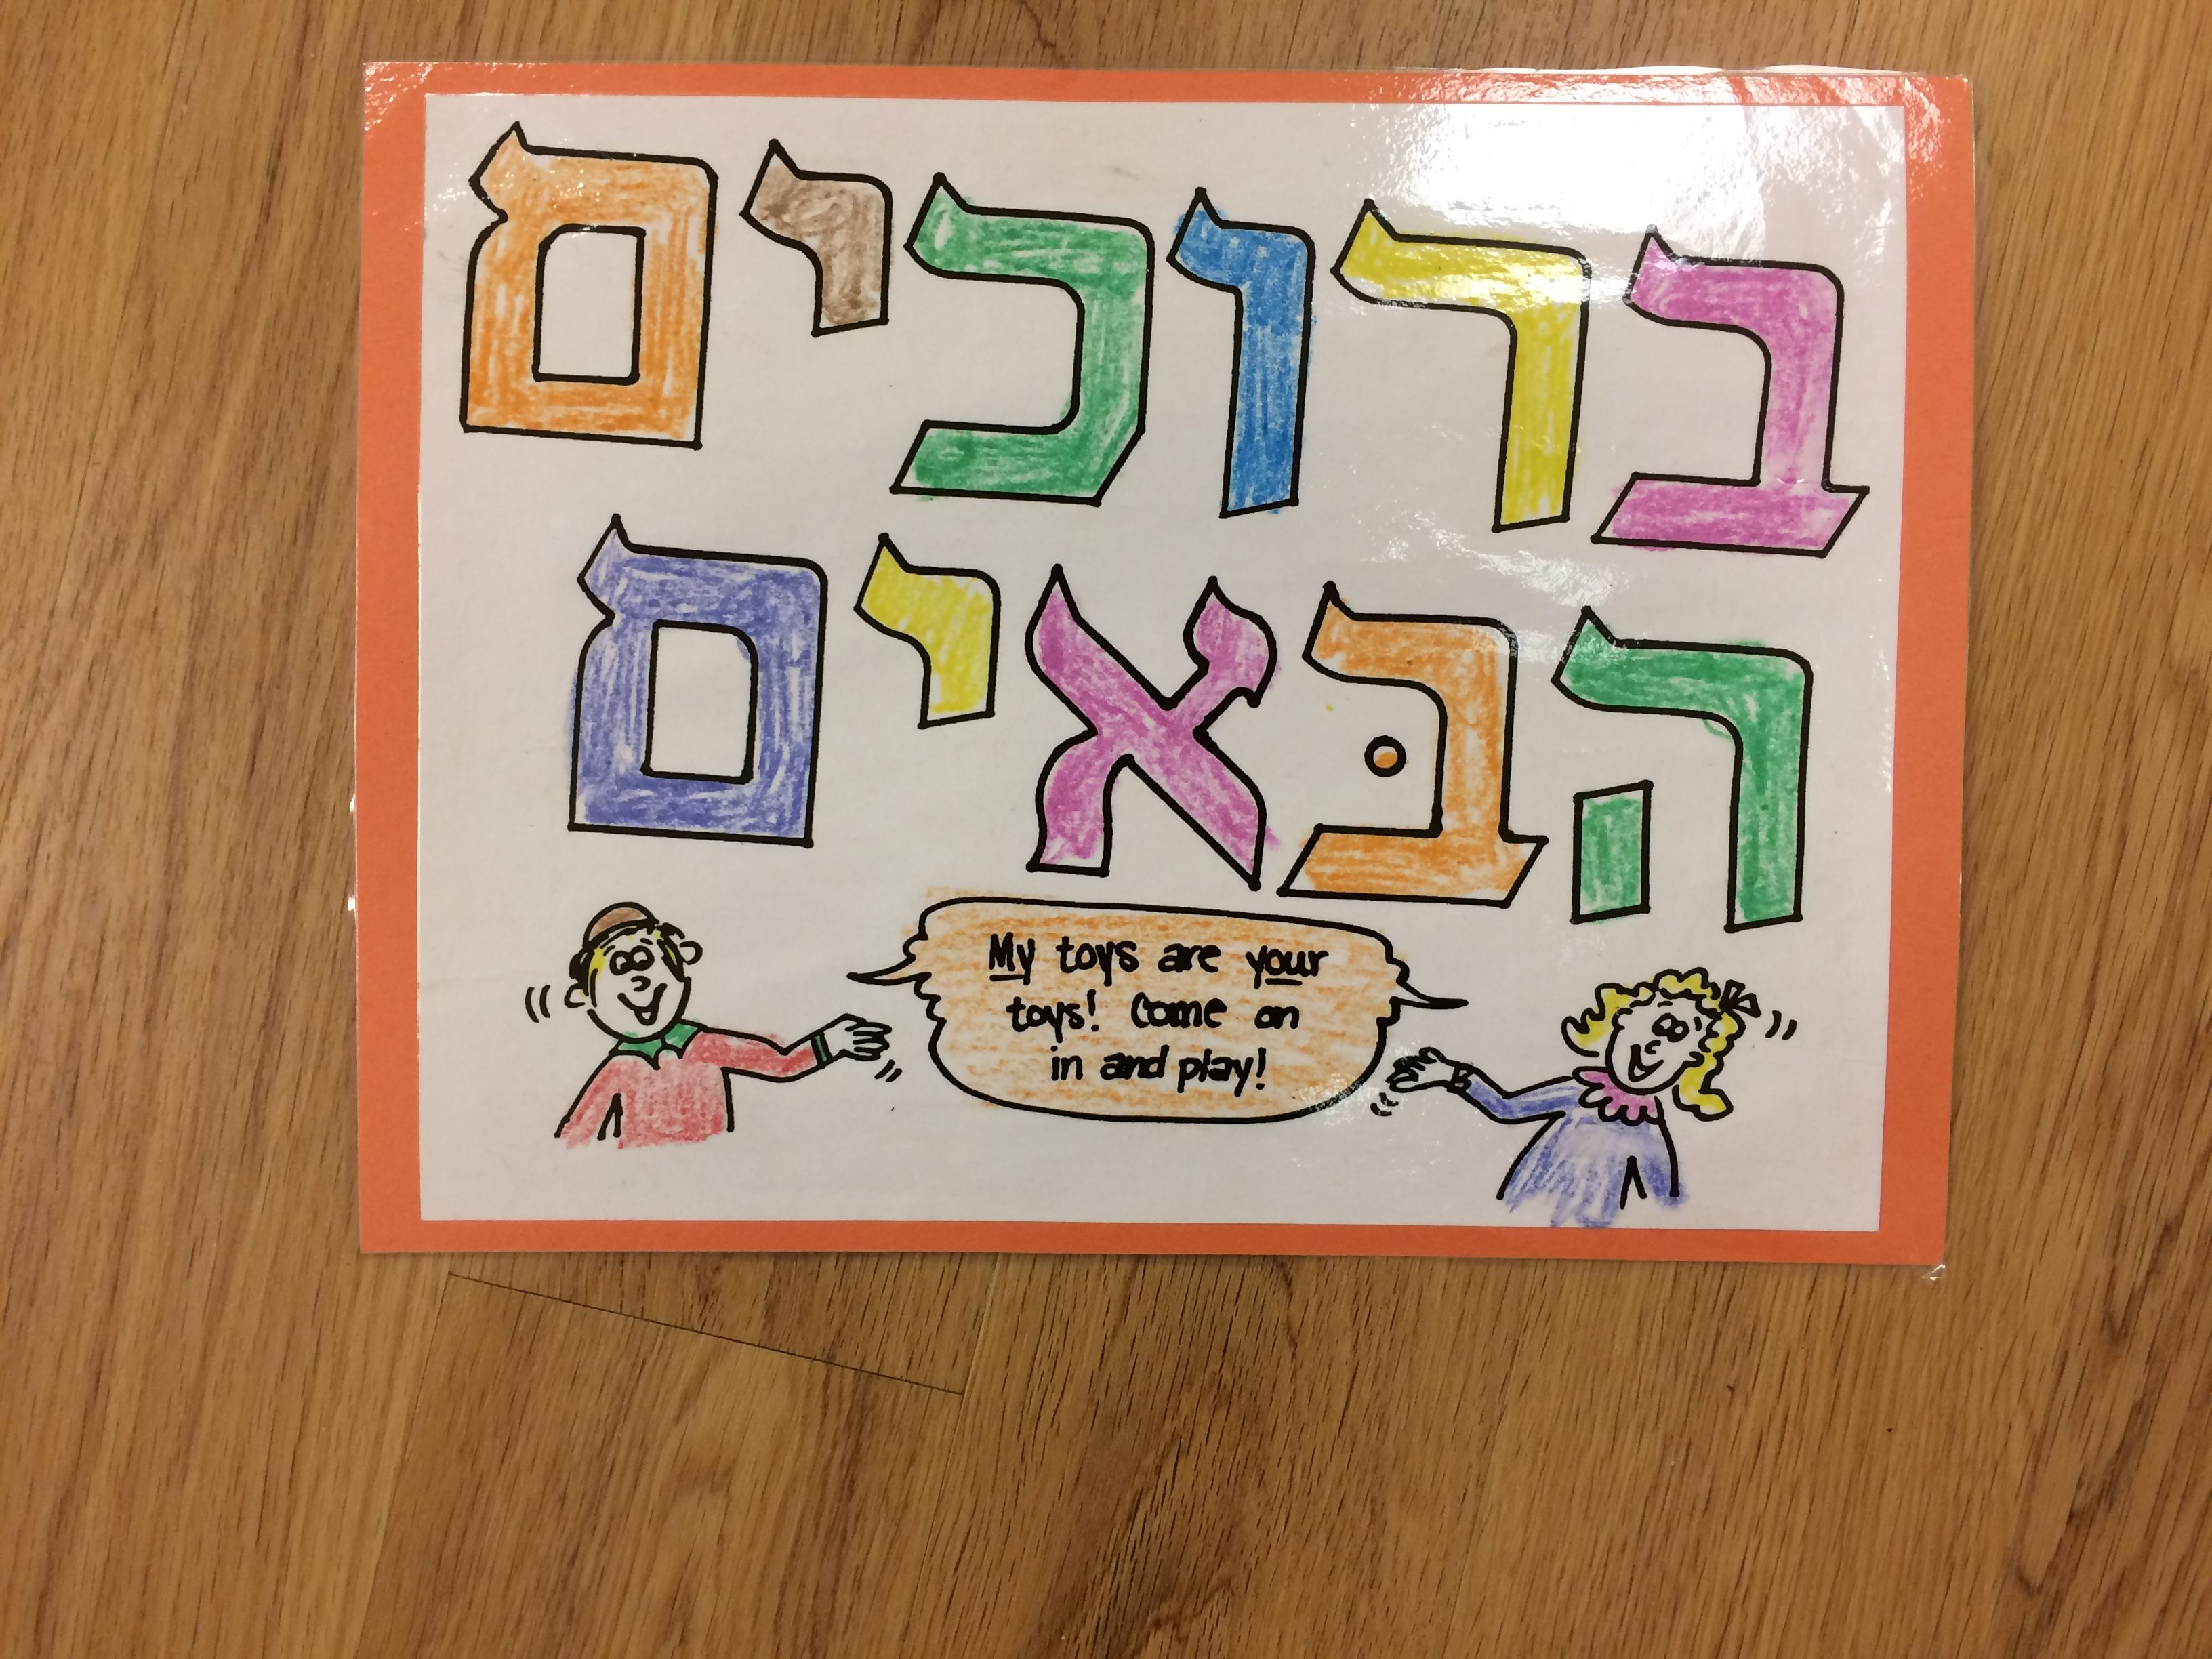 Hachnasat Orchim Welcoming Guests Visit Chinuch For